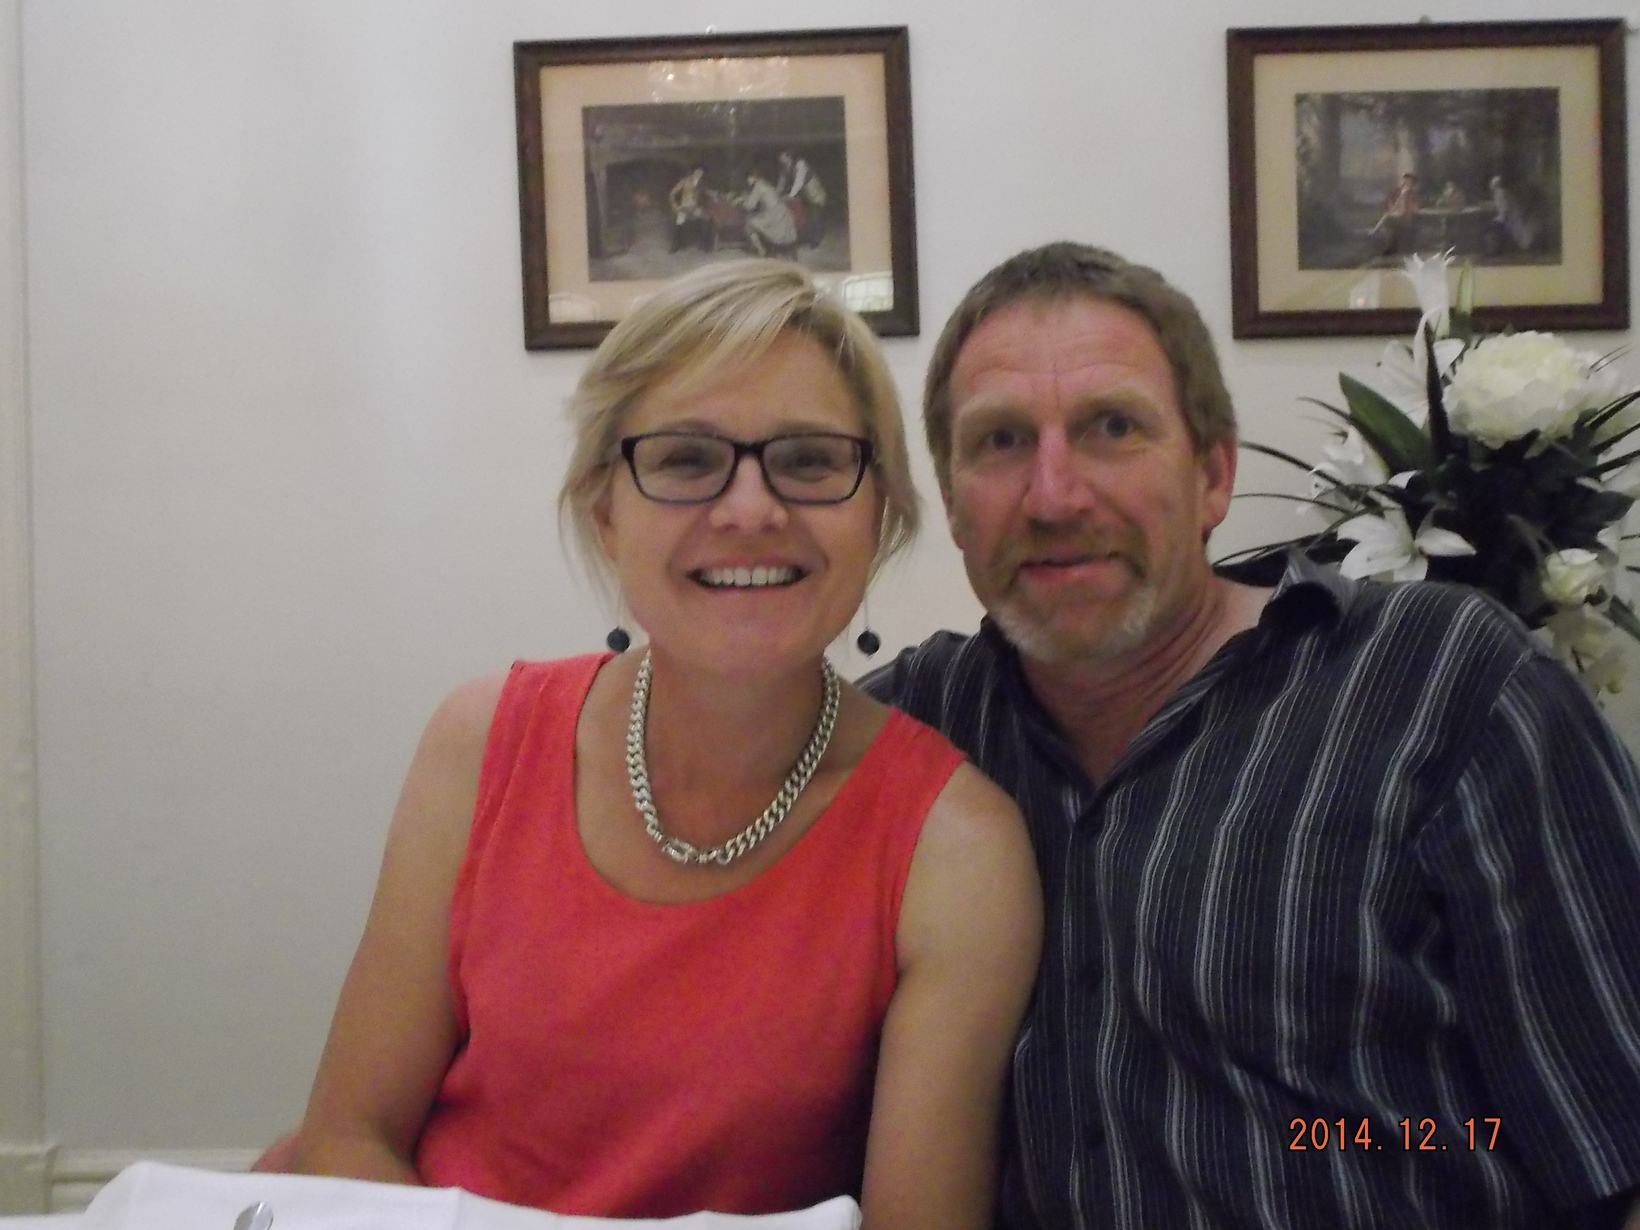 Louise & Bruce from Maffra, Victoria, Australia